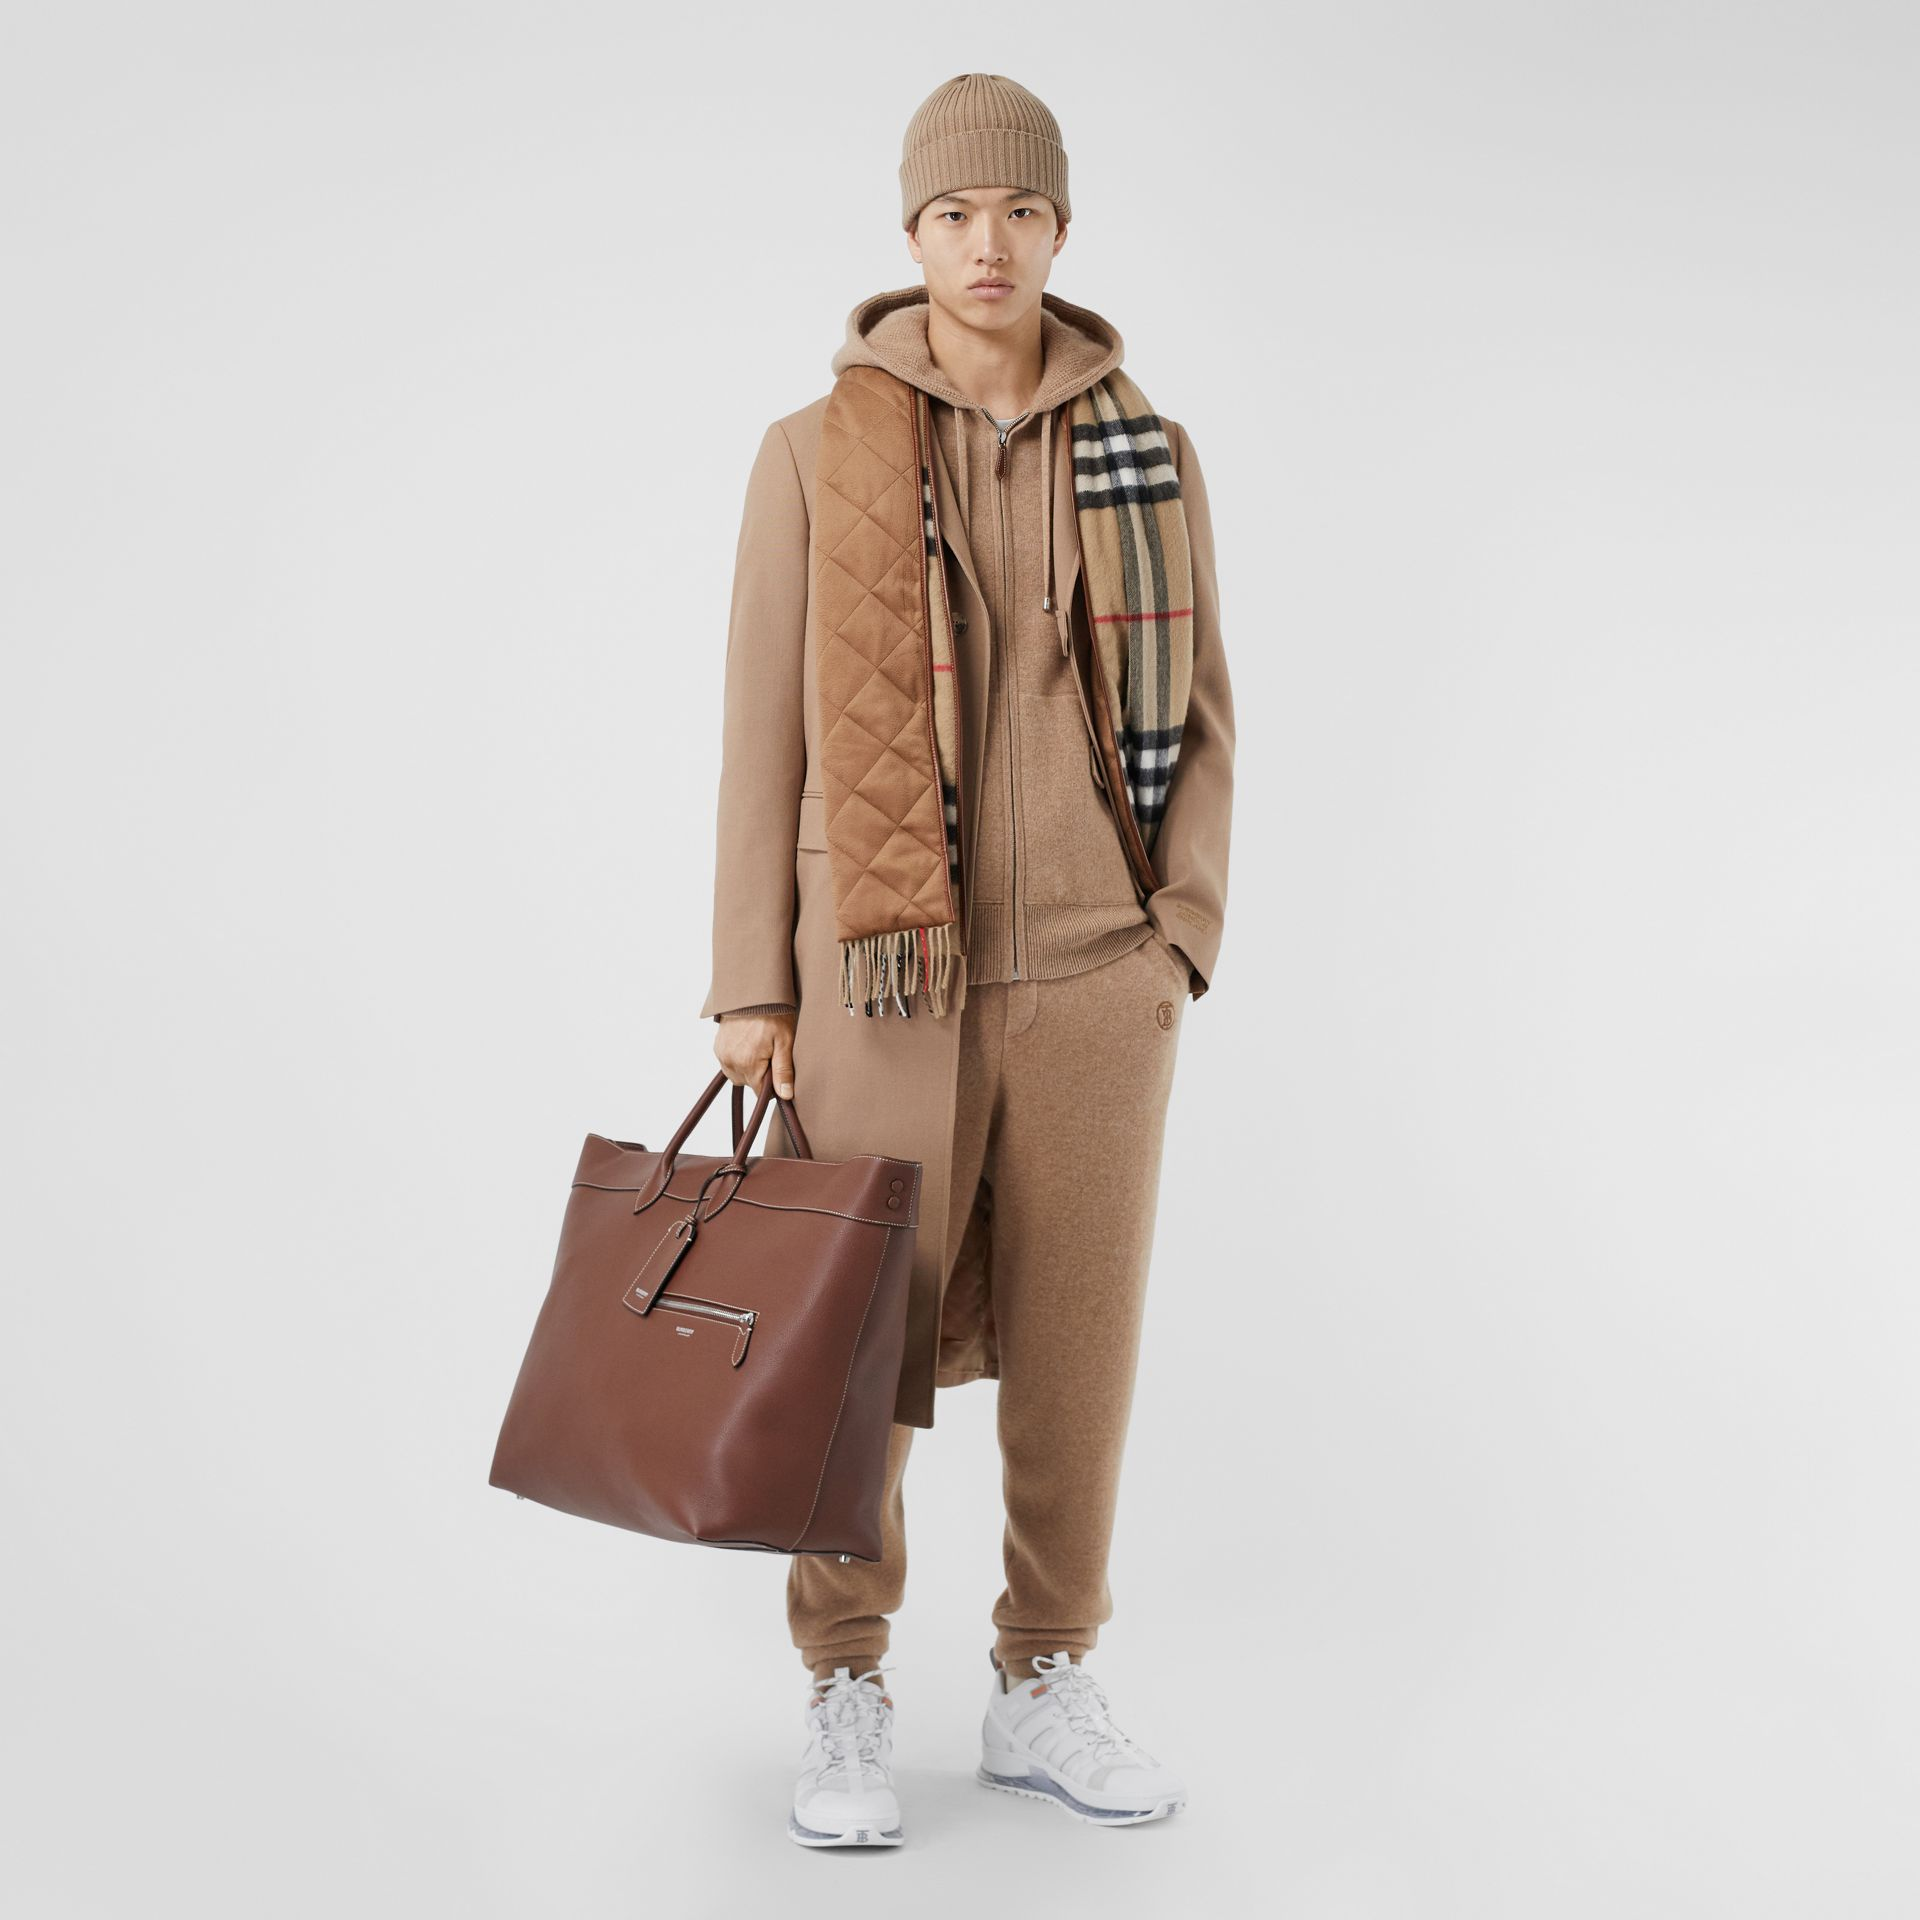 Grainy Leather Holdall in Tan - Men | Burberry Canada - gallery image 5